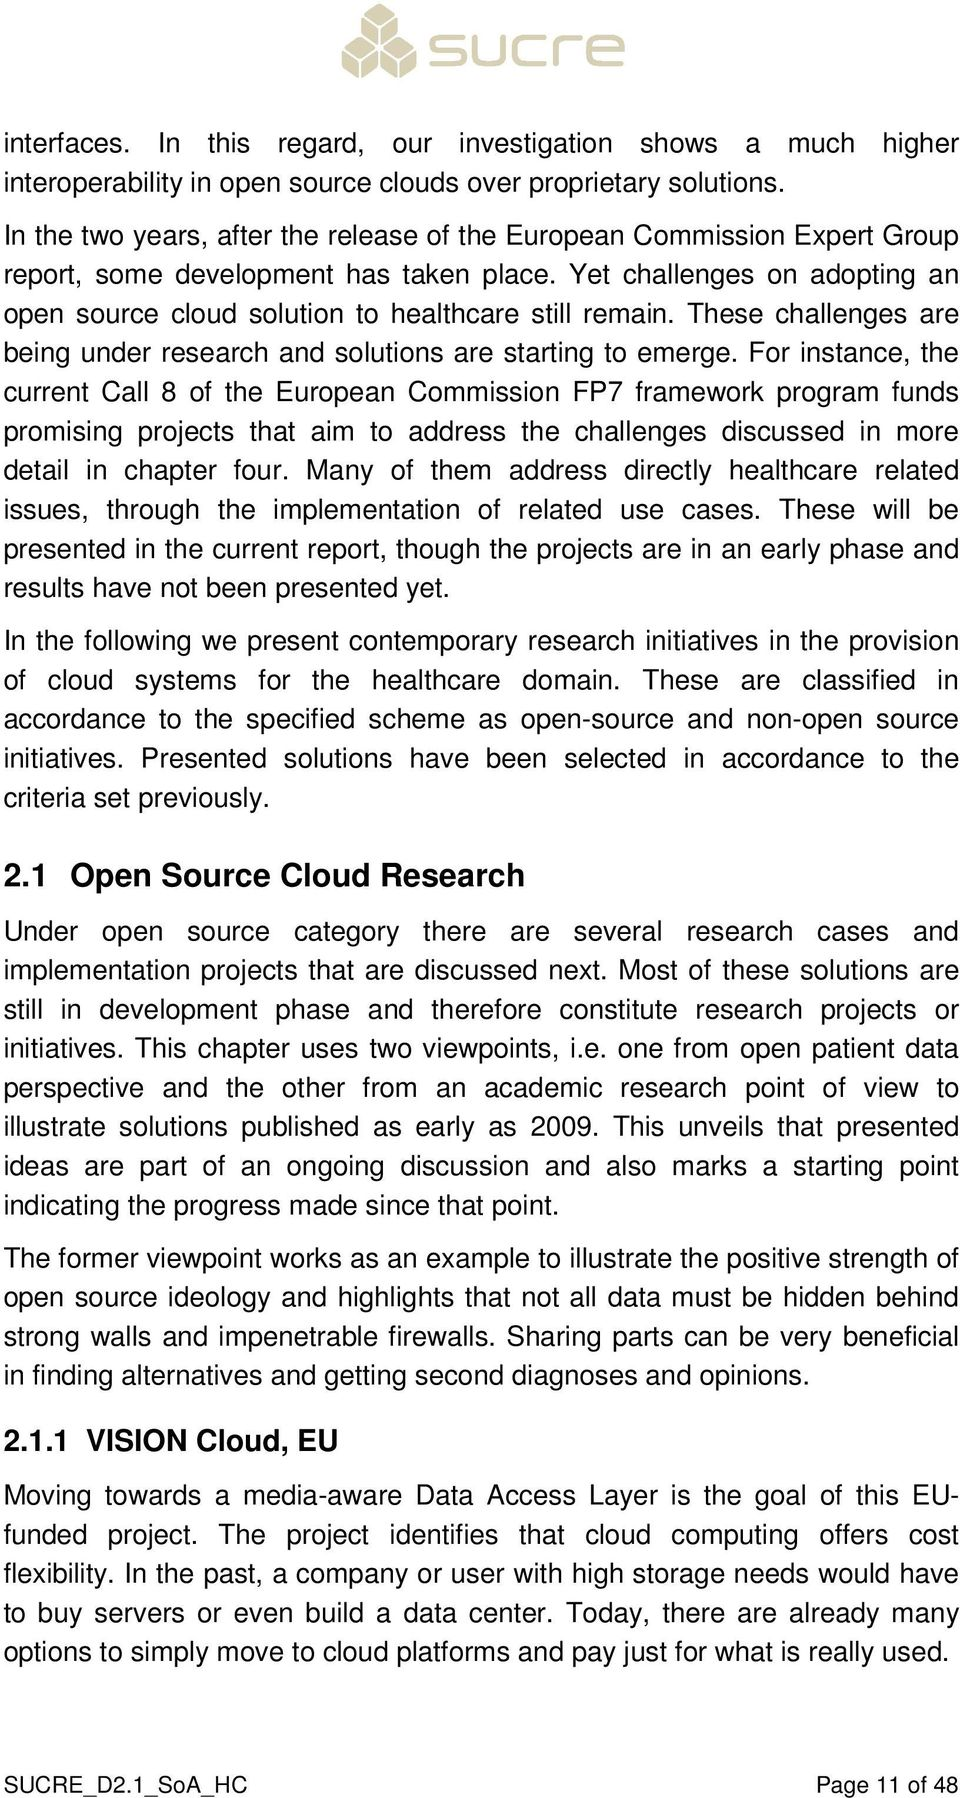 Yet challenges on adopting an open source cloud solution to healthcare still remain. These challenges are being under research and solutions are starting to emerge.